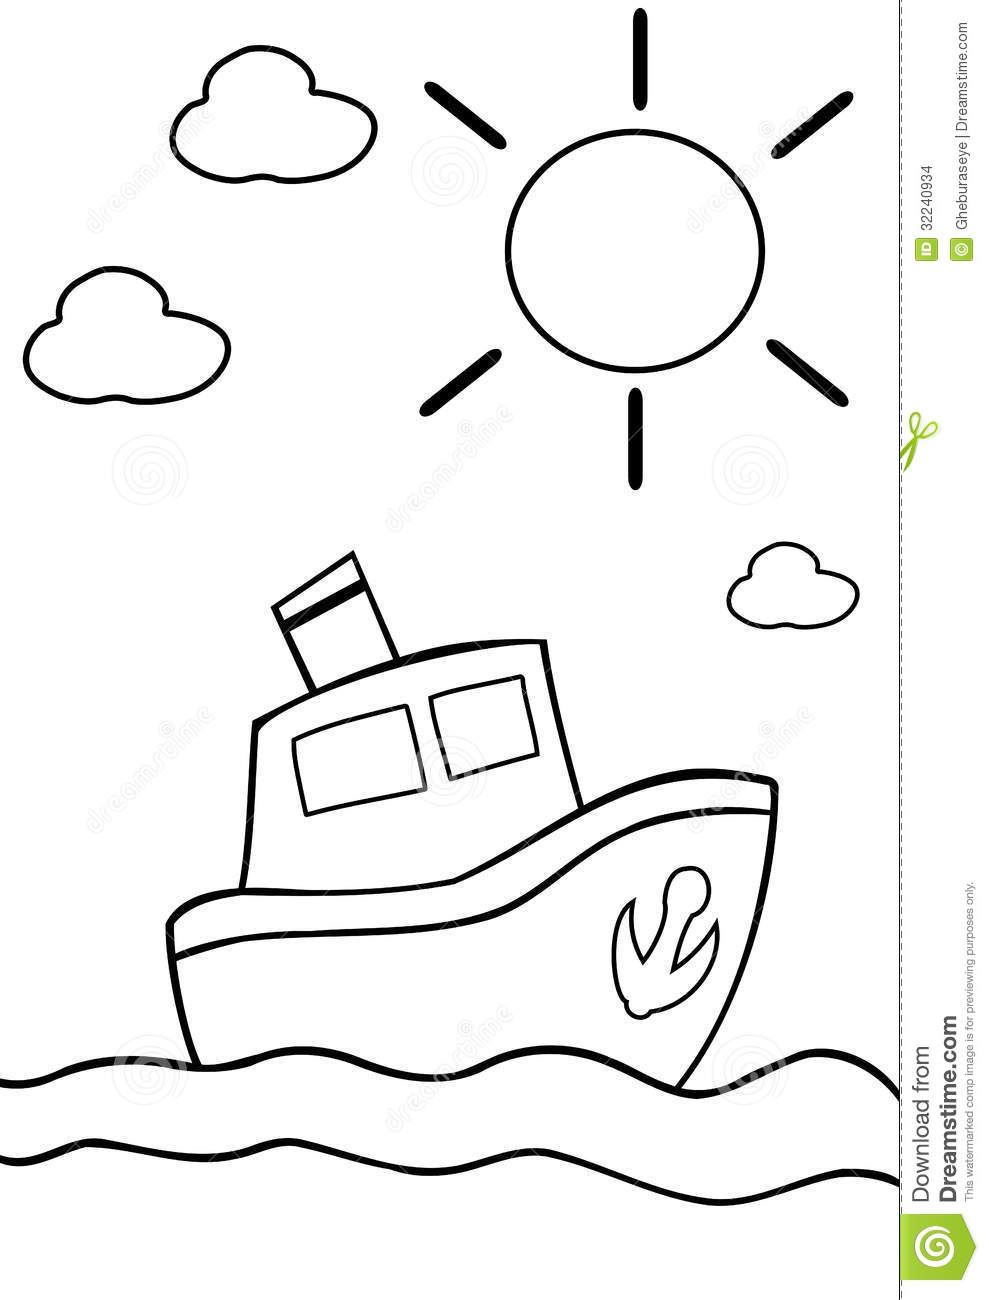 coloring boat stock images